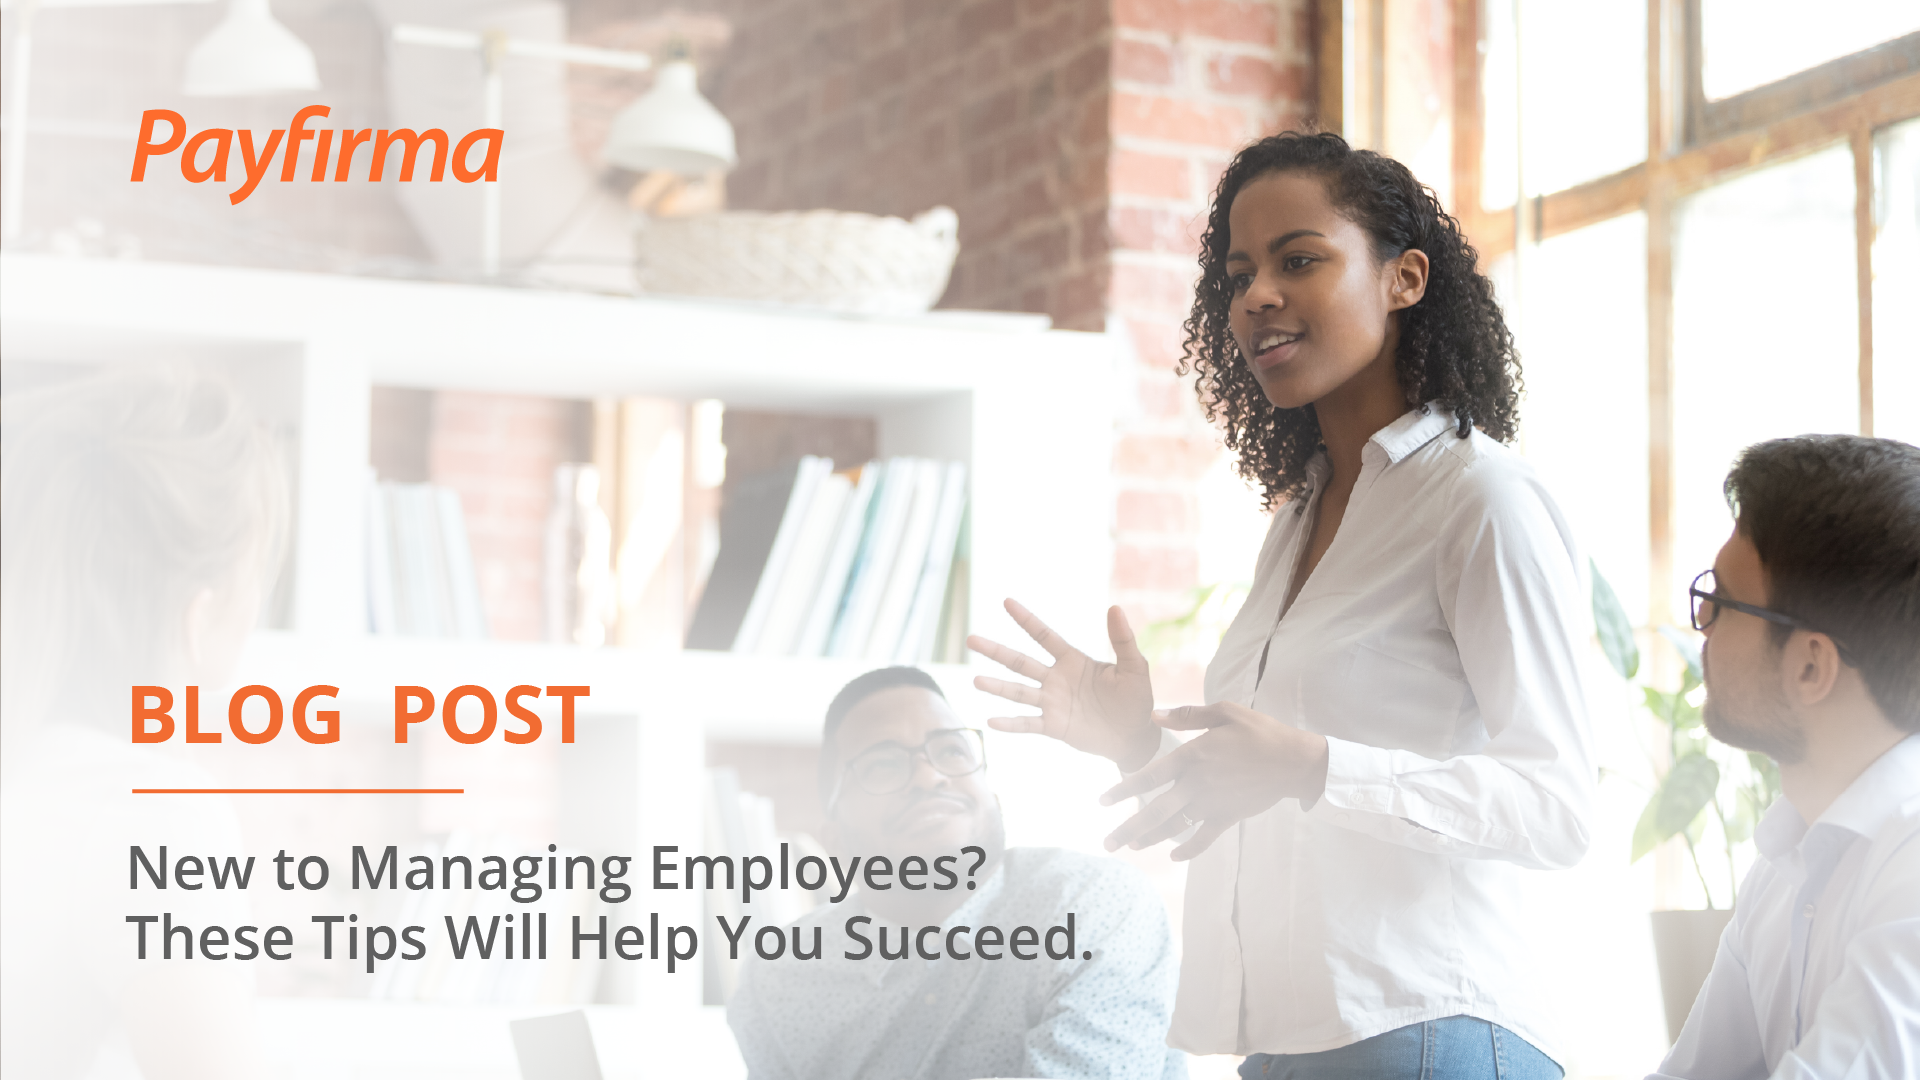 New to Managing Employees? These Tips Will Help You Succeed.